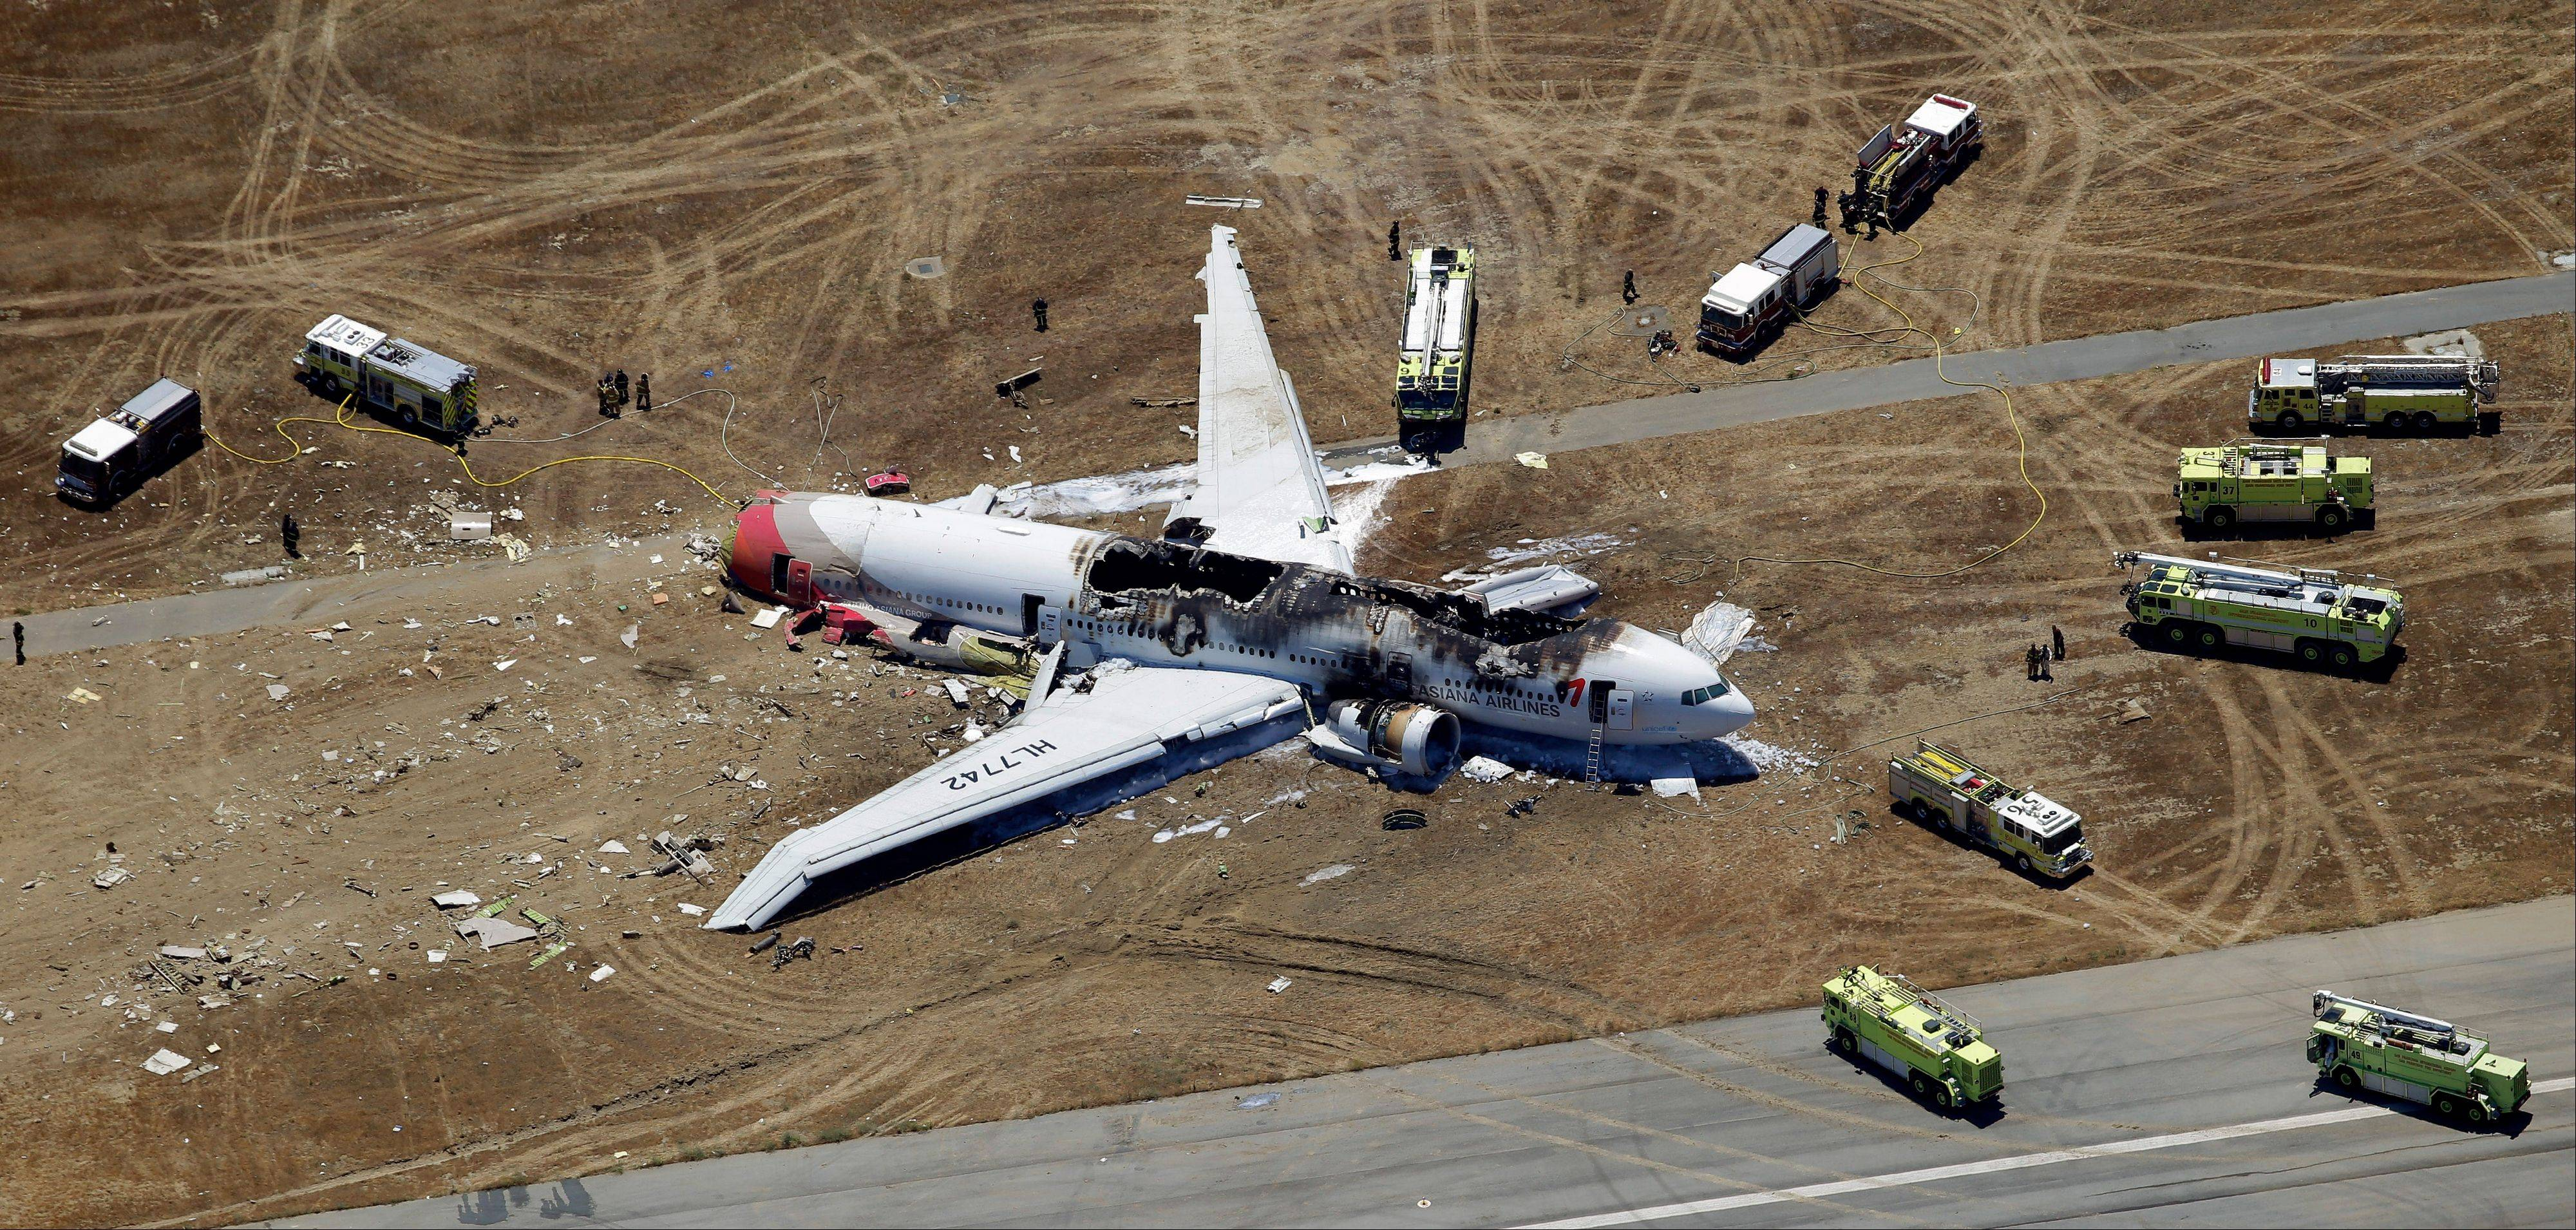 When the courts have to figure compensation for people aboard Asiana Flight 214, which crashed July 6 at the San Francisco International Airport, the potential payouts will probably be vastly different for Americans and passengers from other countries. A pact is likely to close U.S. courts to many foreigners and force them to pursue their claims in Asia and elsewhere, where lawsuits are rarer, harder to win.